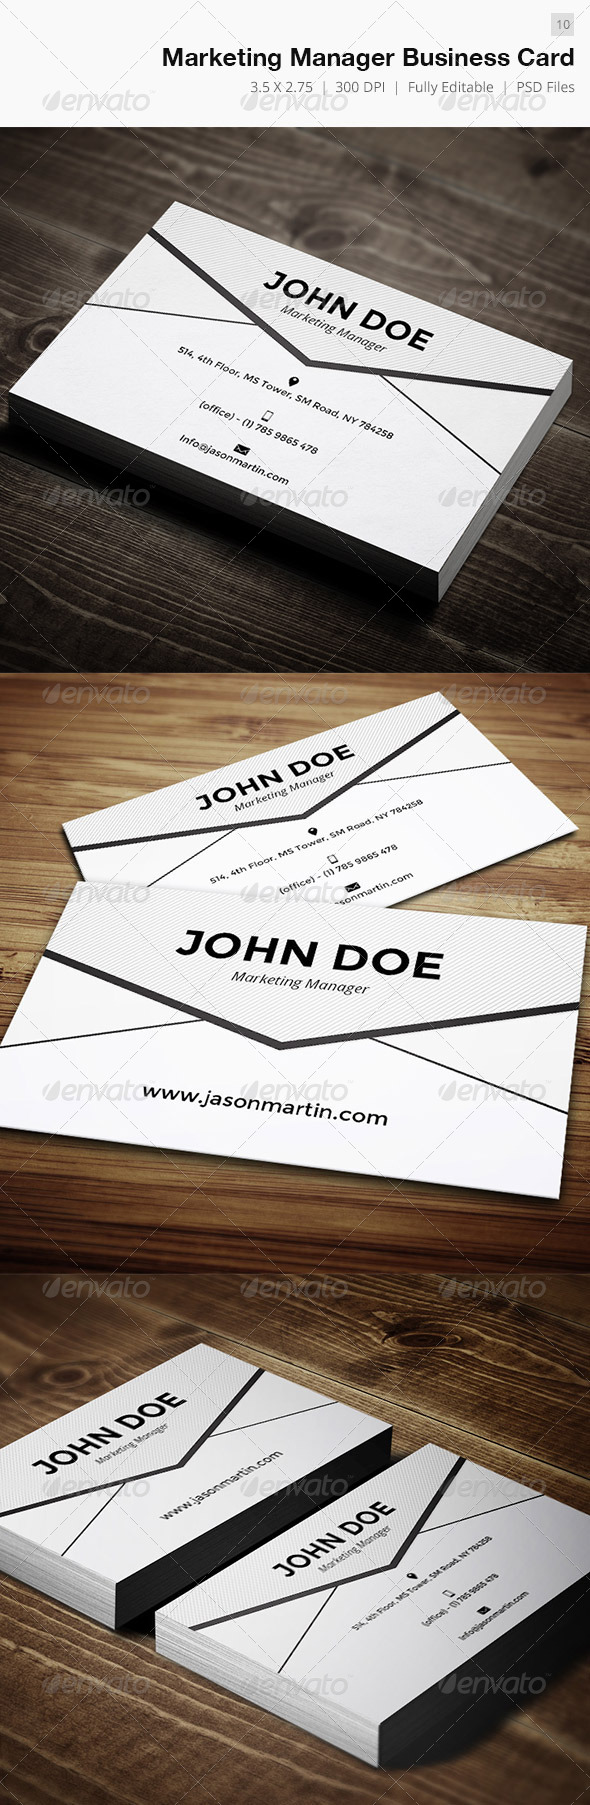 Marketing Manager Business Card 10